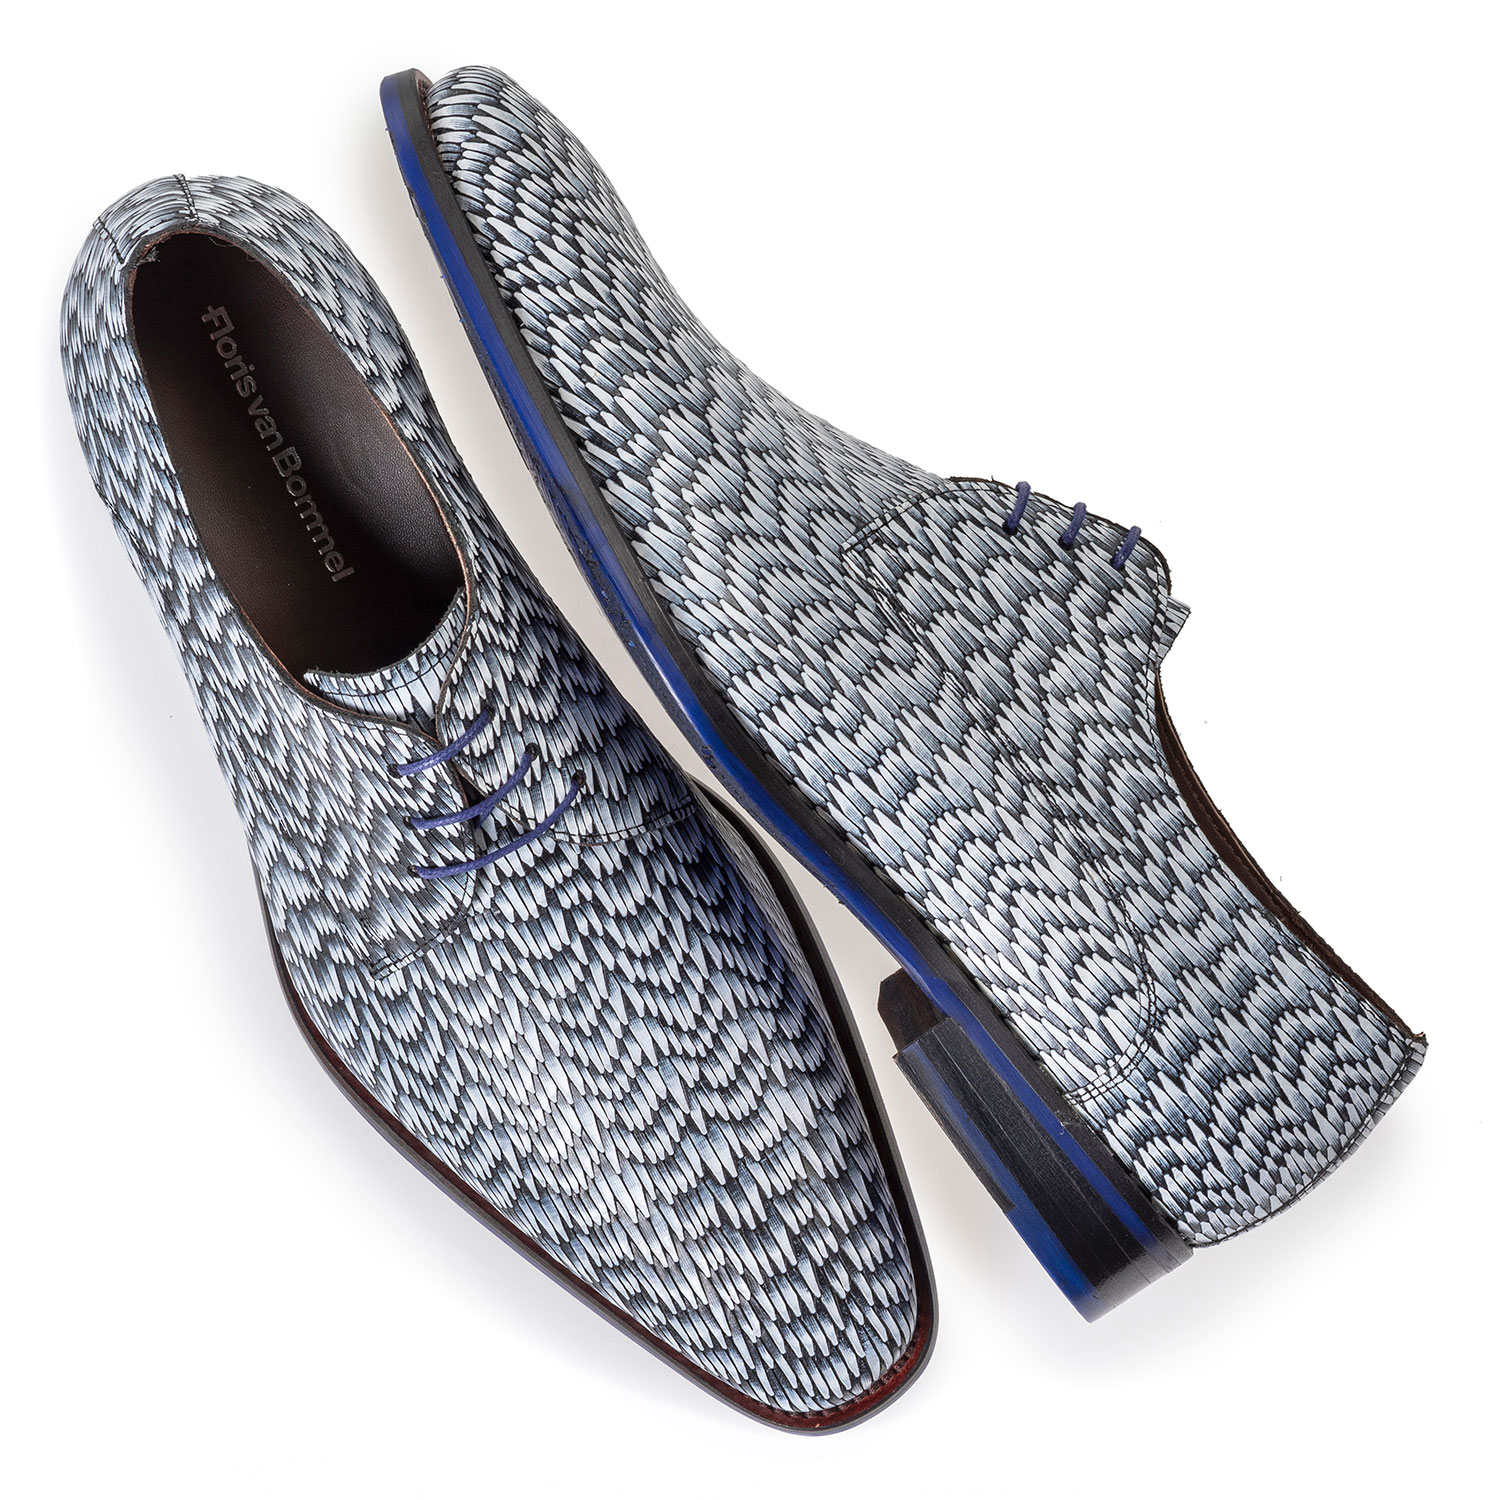 18159/20 - Light grey leather lace shoe with print